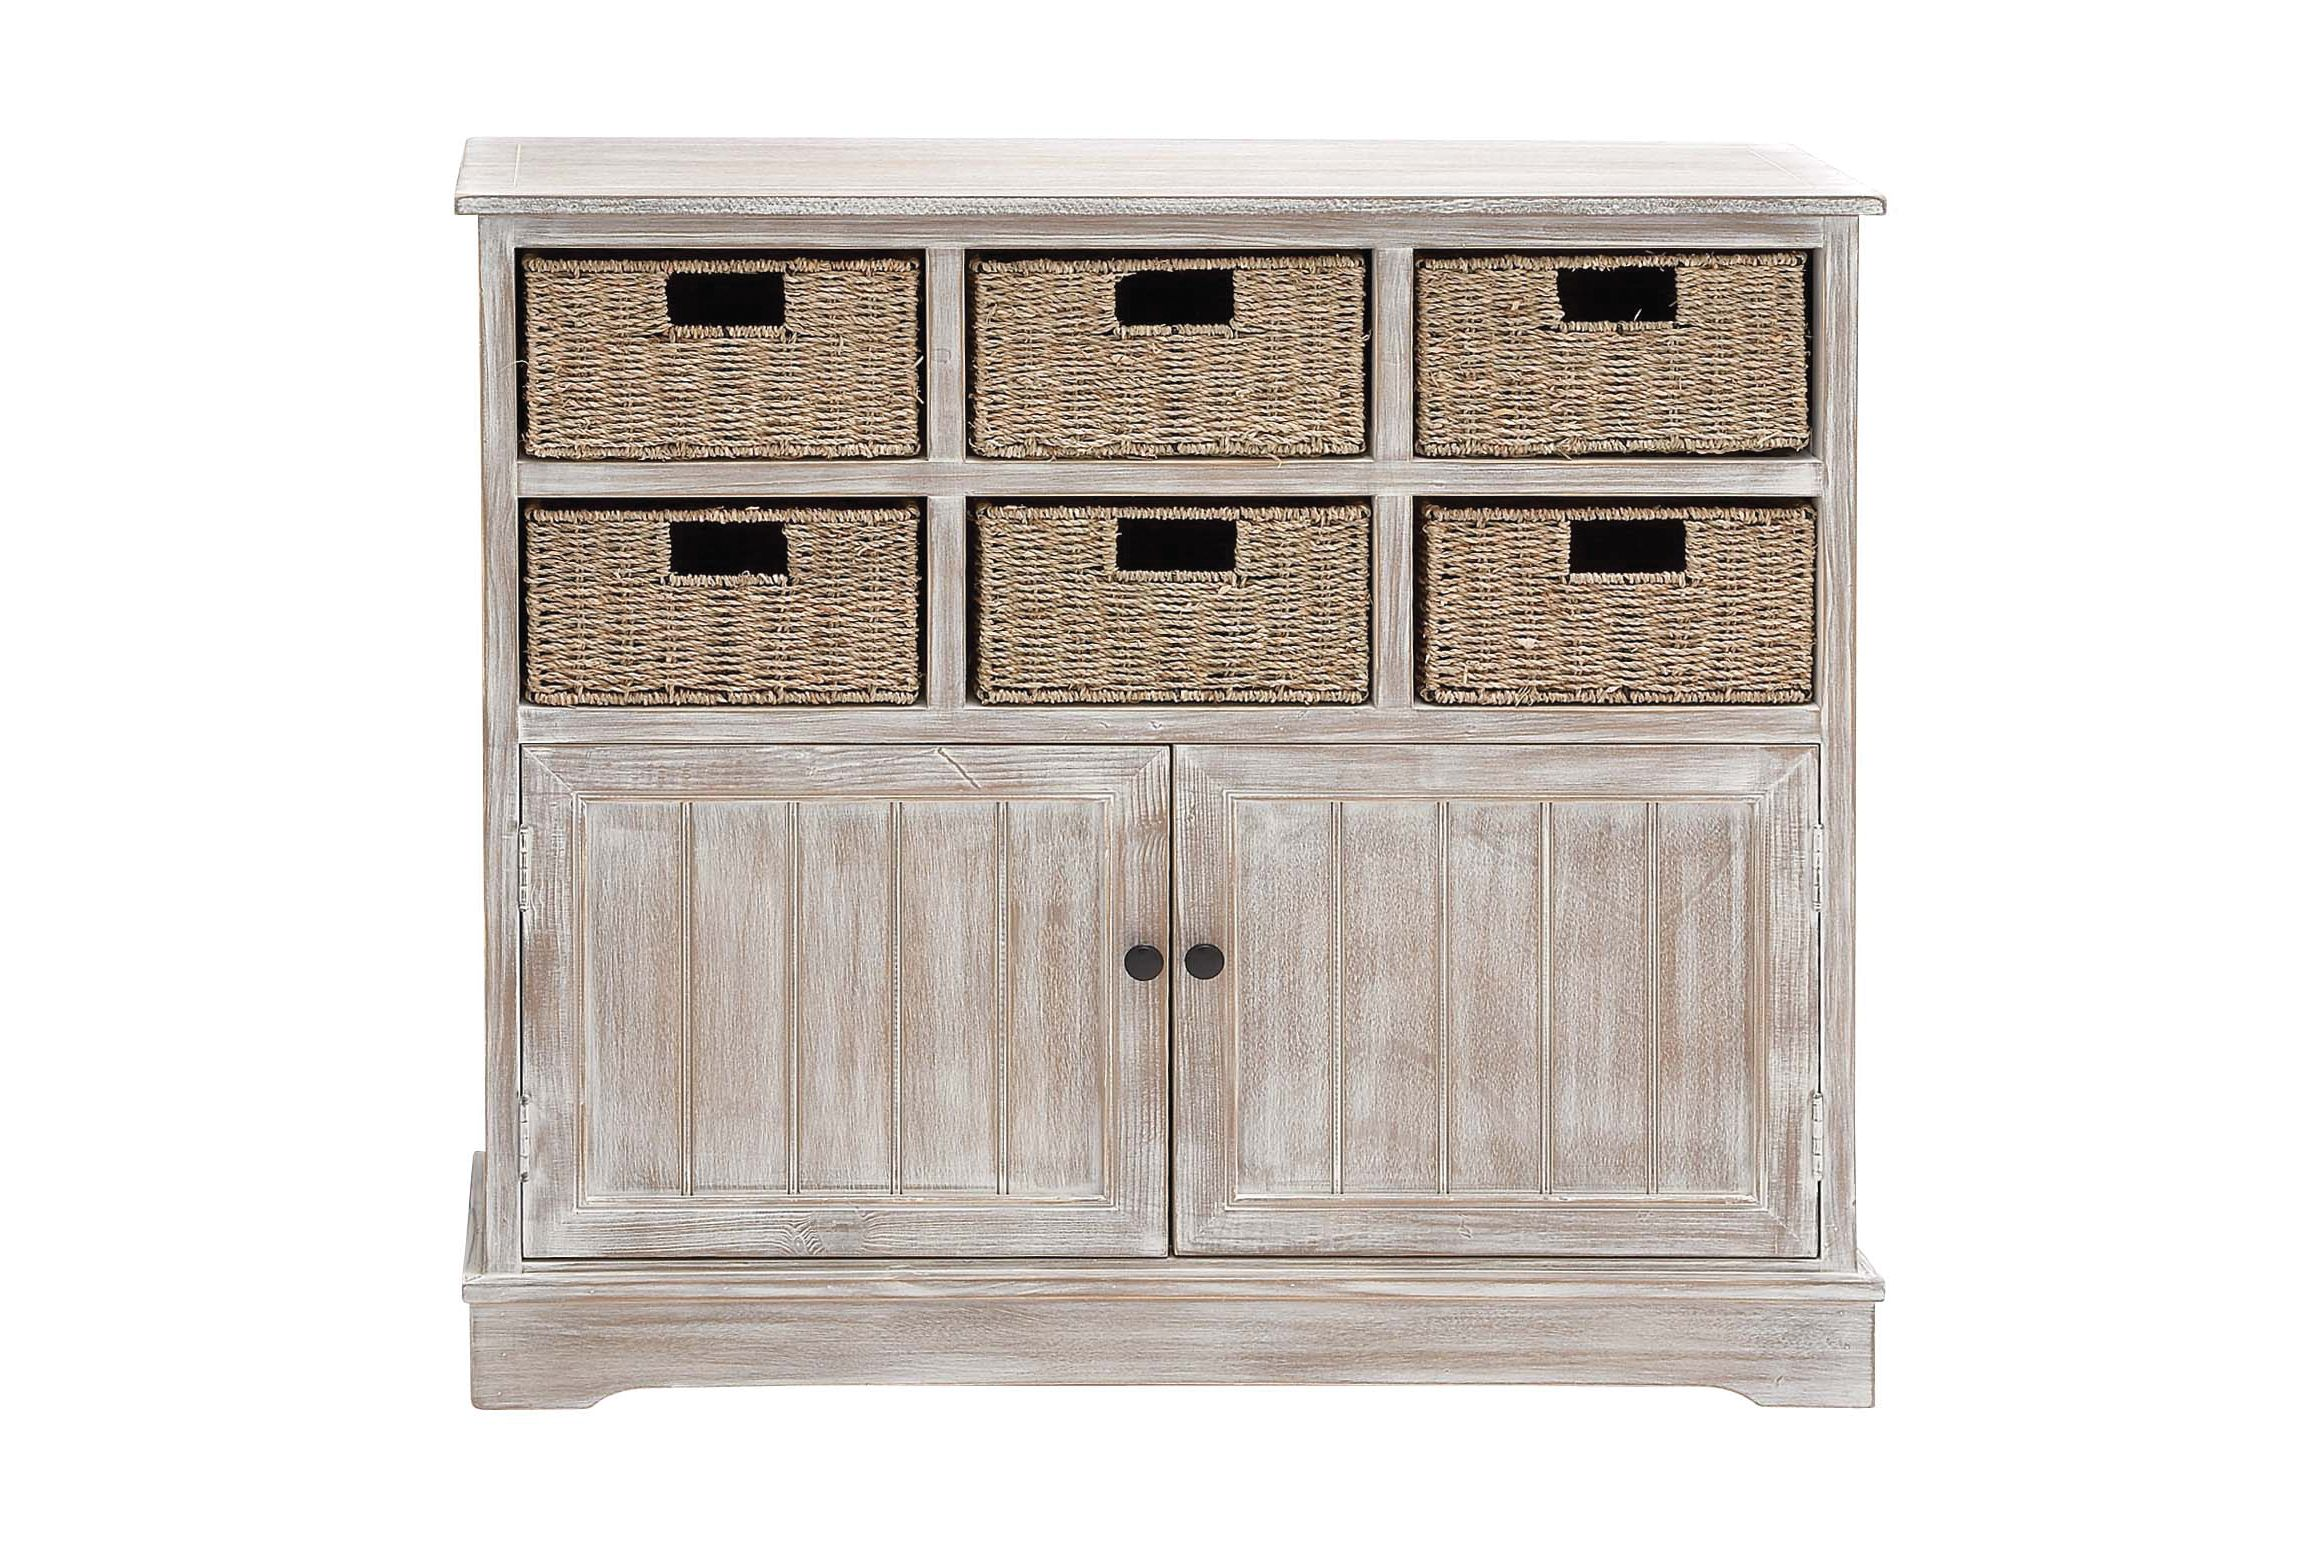 rustic country inspired storage cabinet with 6 wicker basket drawers in distressed whitewash by uma save 39701 online only 39799 free shipping - Decorative Storage Trunks